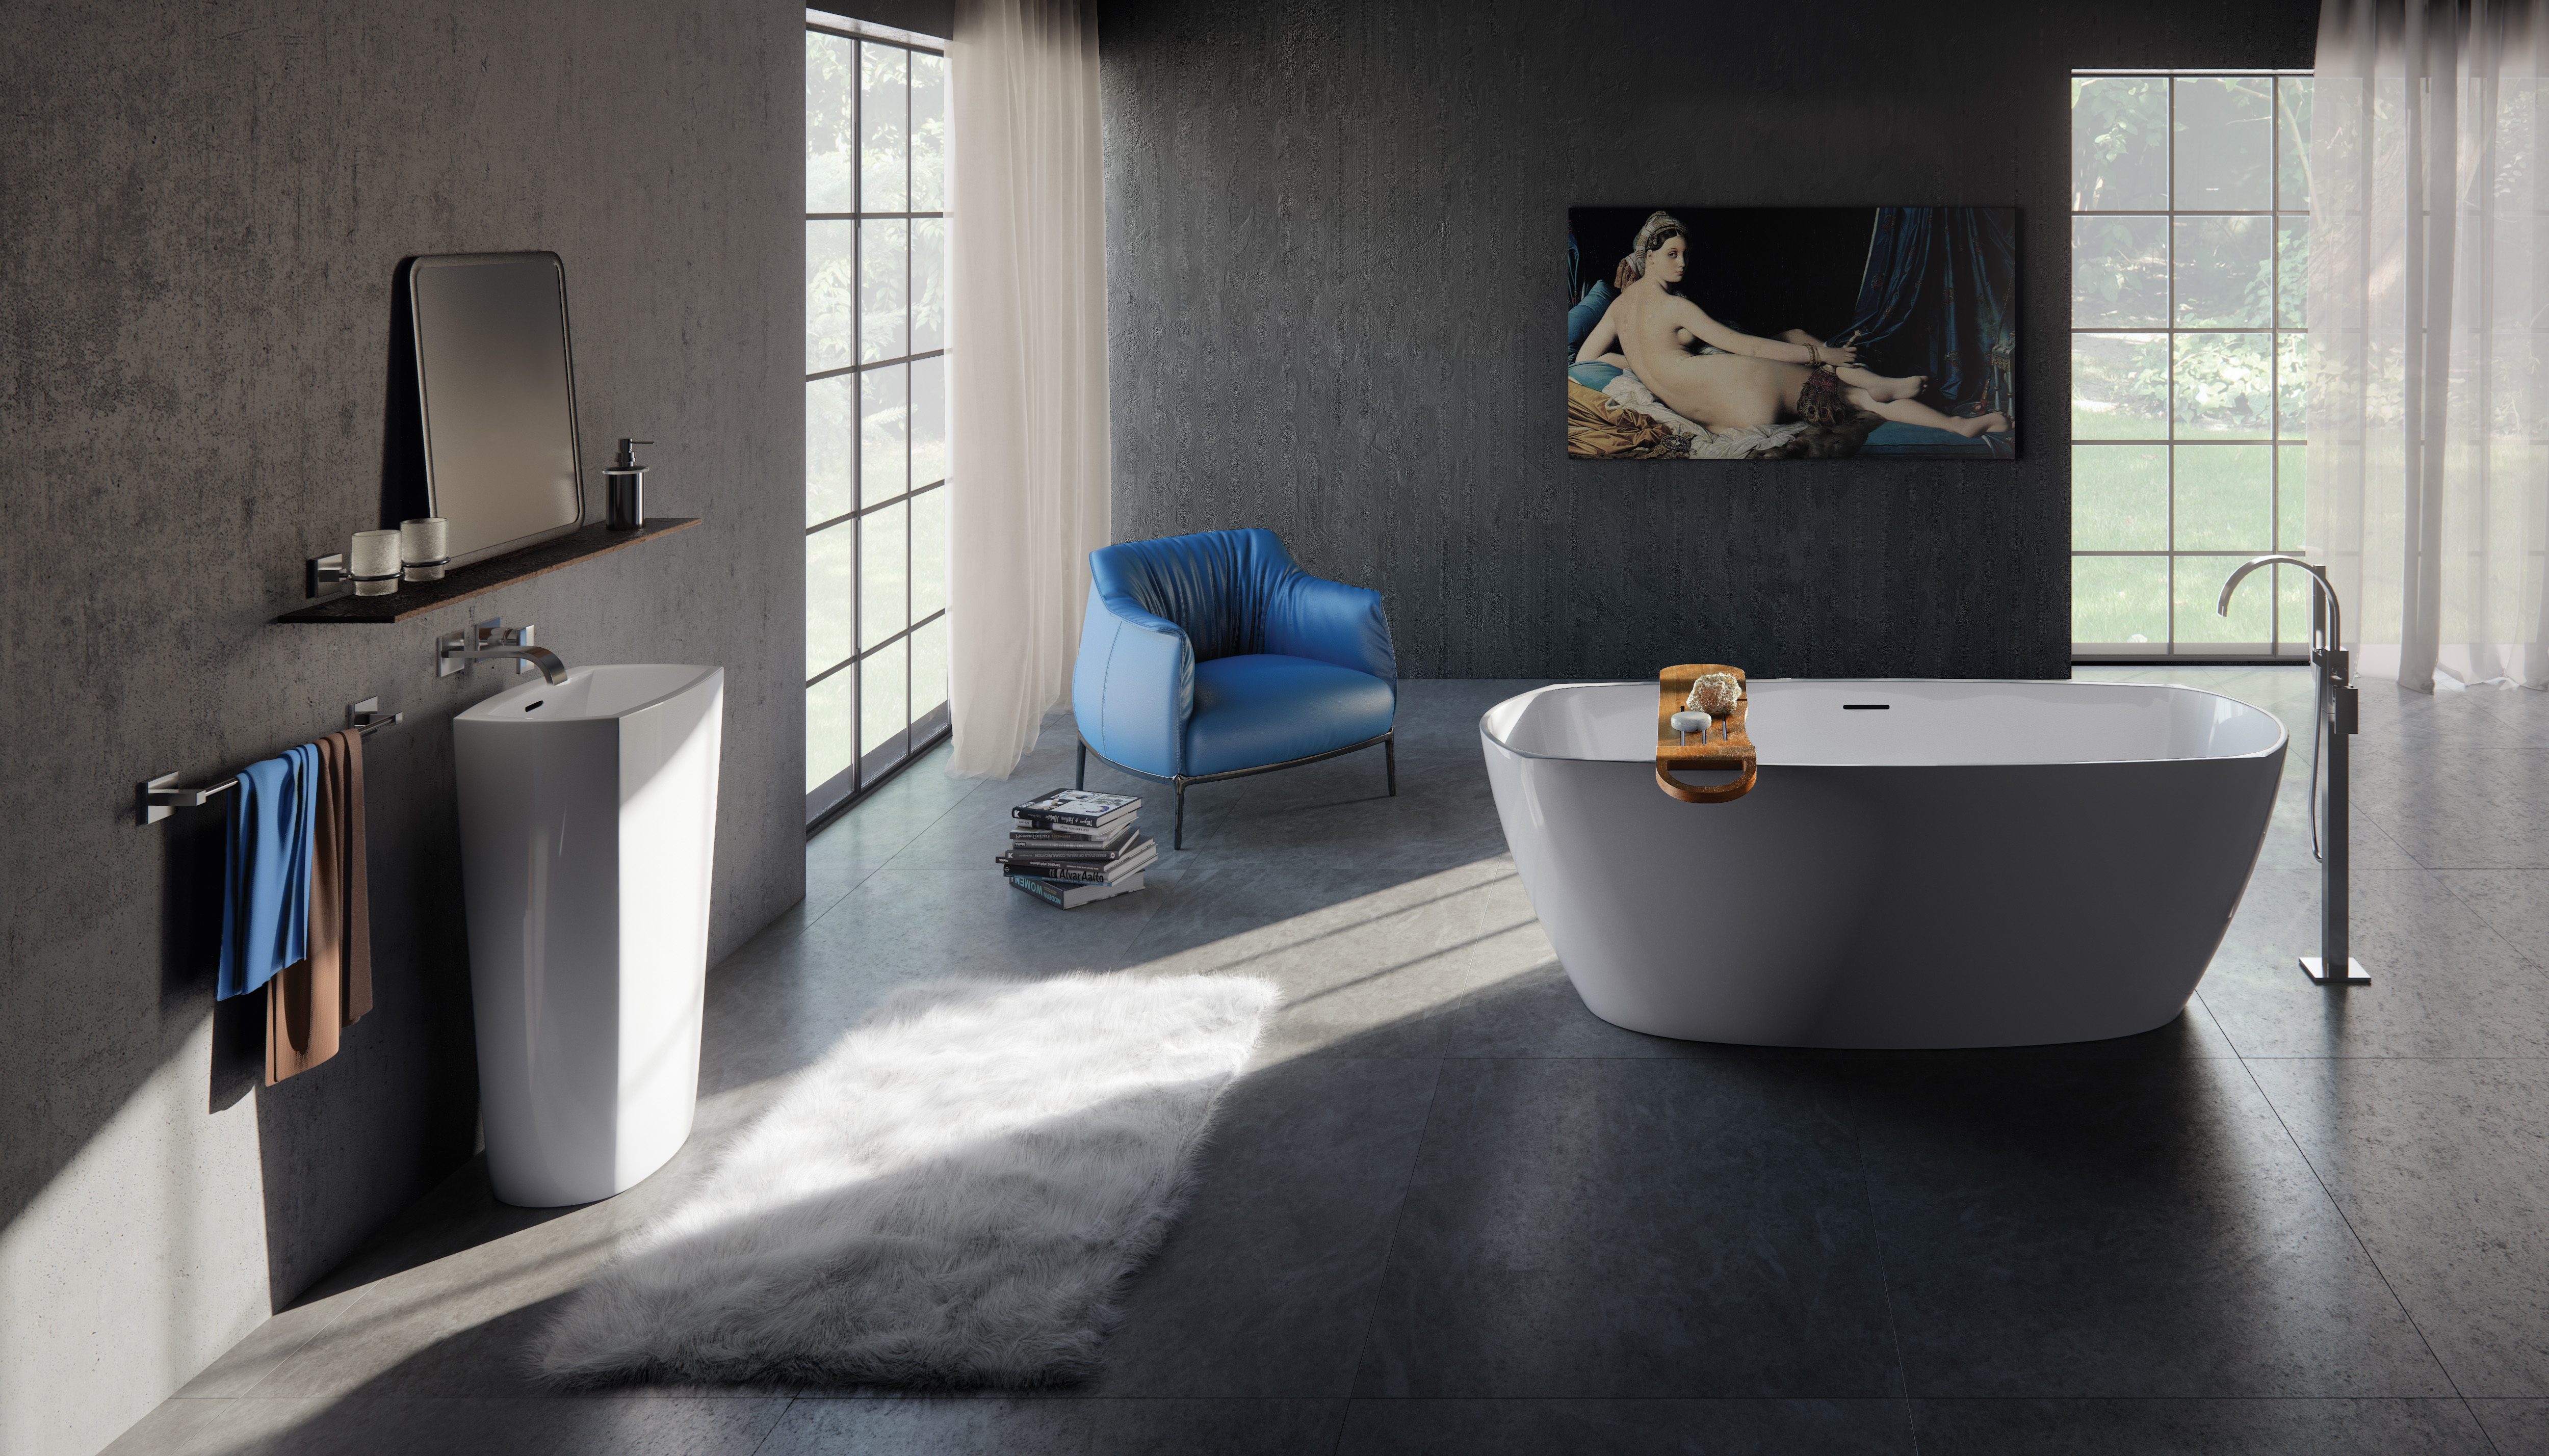 g faucet tubs bath sinks artisan graff home post crafted single faucets lav lavatory stealth